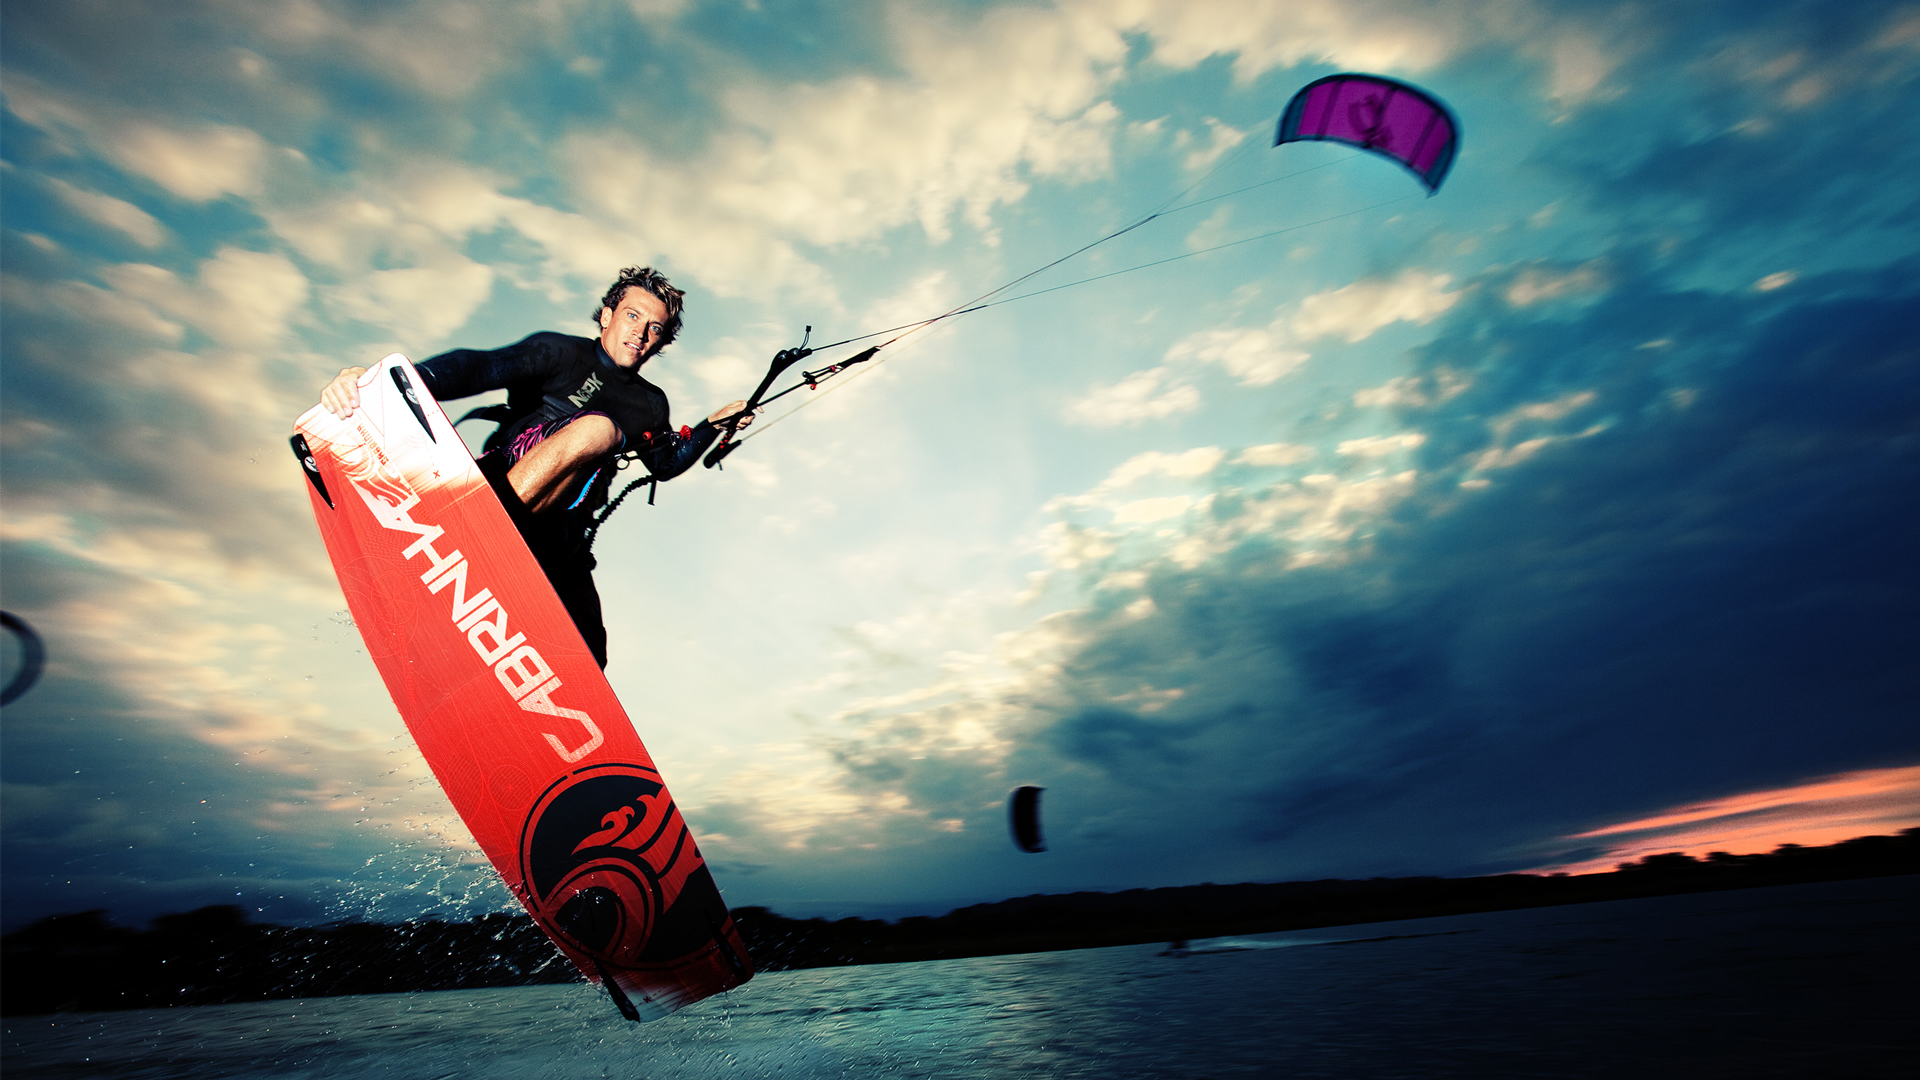 kitesurf wallpaper image - Damien LeRoy with a tailgrab at dusk on his Cabrinha kites gear - in resolution: High Definition - HD 16:9 1920 X 1080